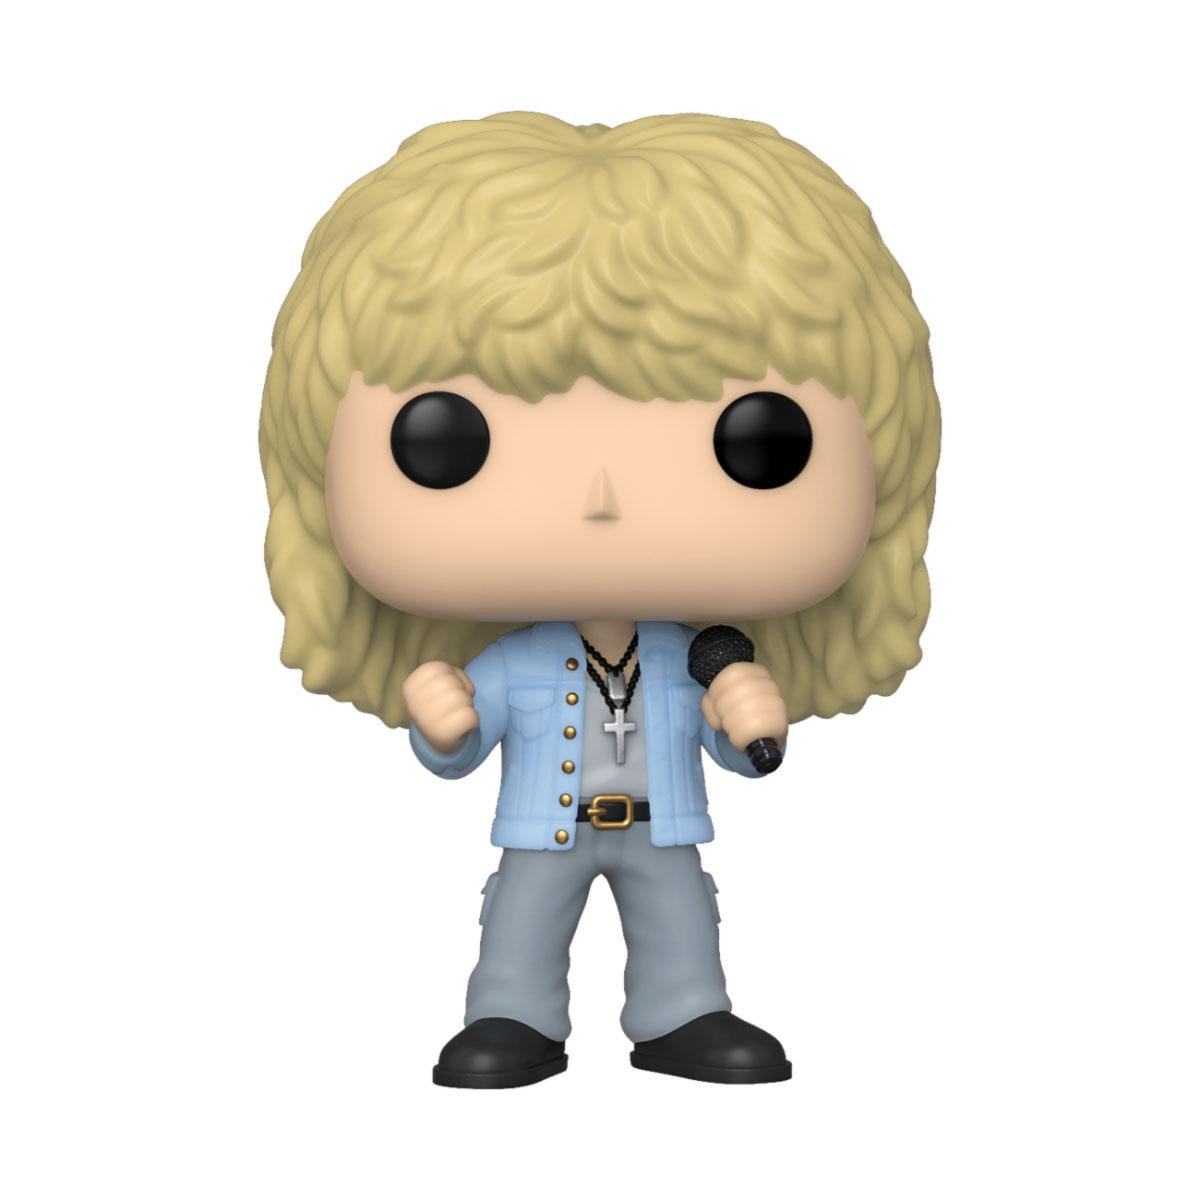 Def Leppard POP! Rocks Vinyl Figure Joe Elliott 9 cm